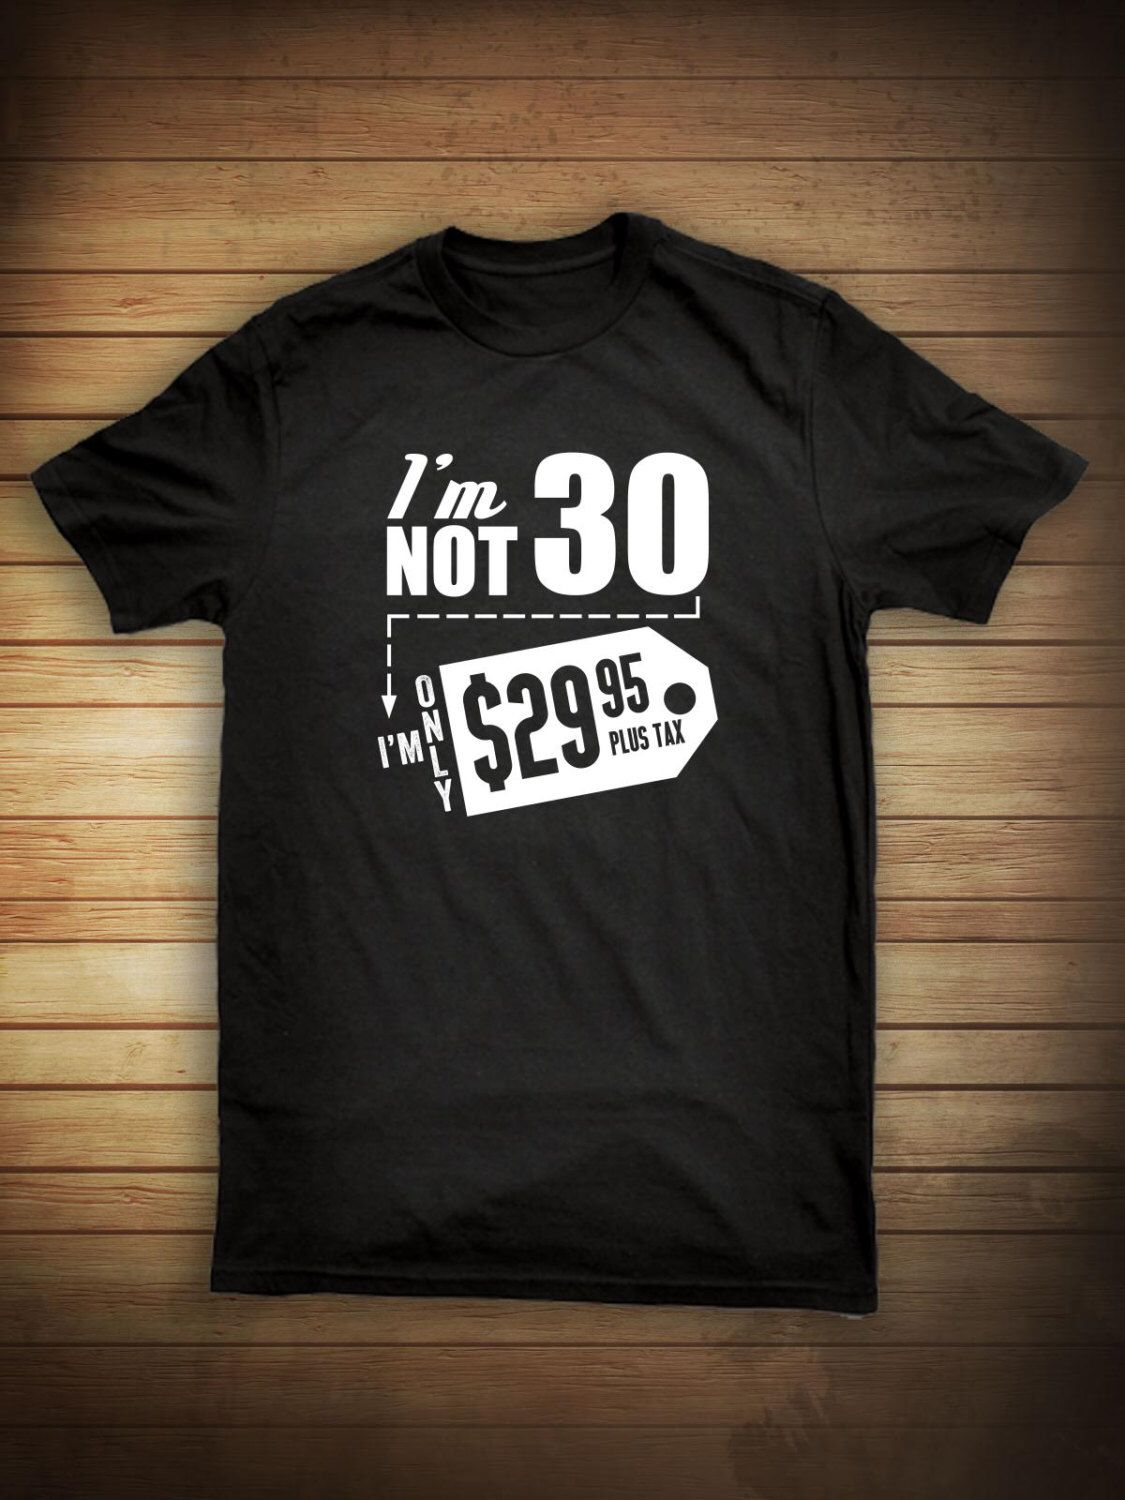 a7738fe22 Pin by EL on Cricut Shirt in 2019 | 30th birthday shirts, Birthday ...